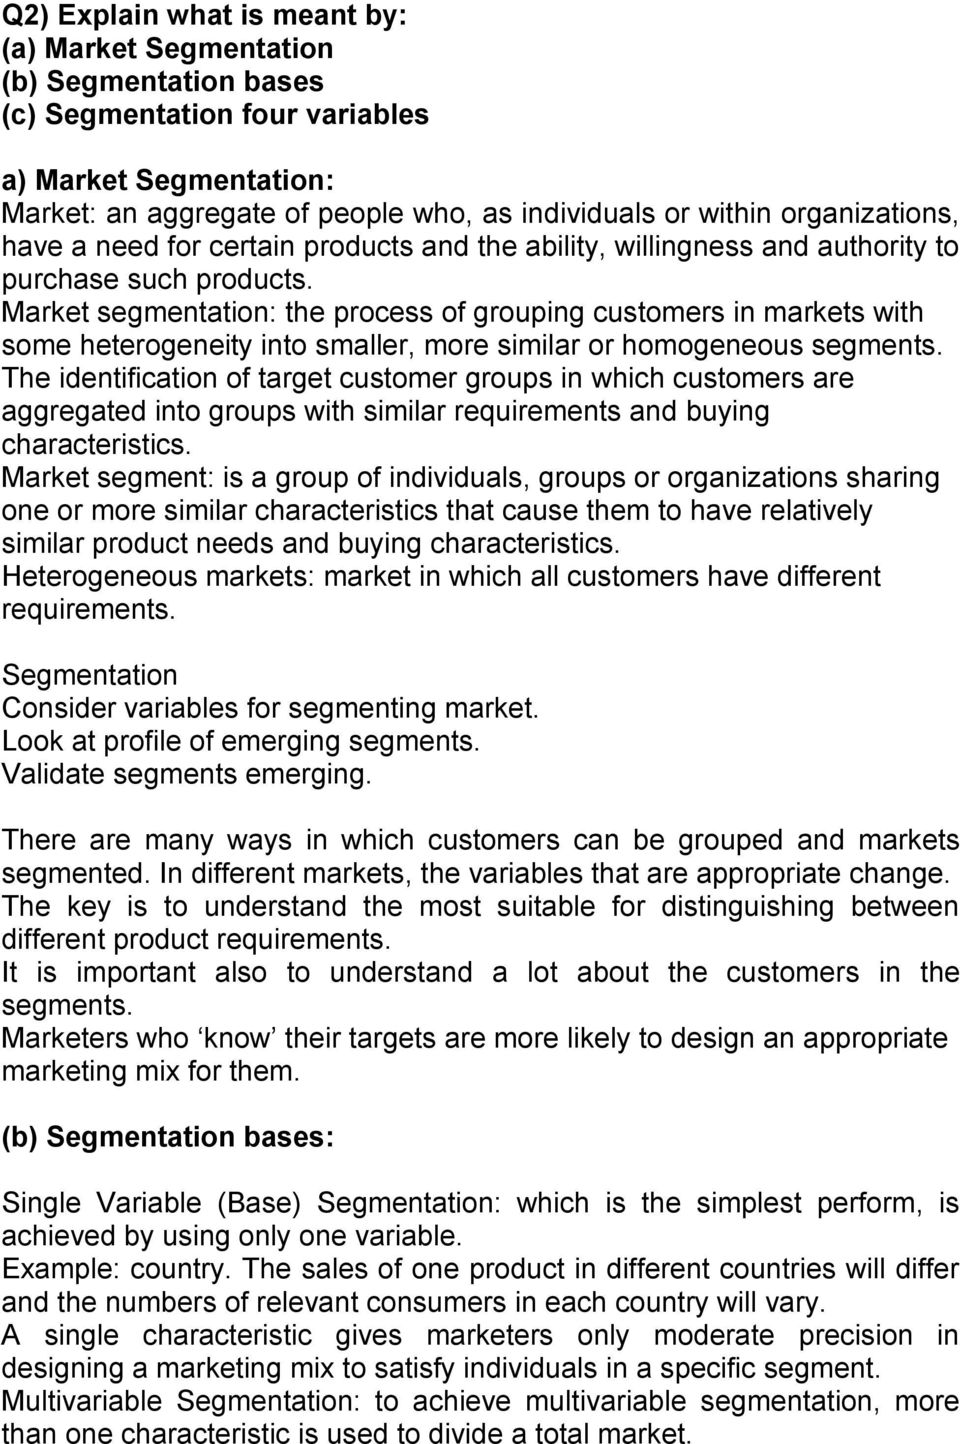 Market segmentation: the process of grouping customers in markets with some heterogeneity into smaller, more similar or homogeneous segments.